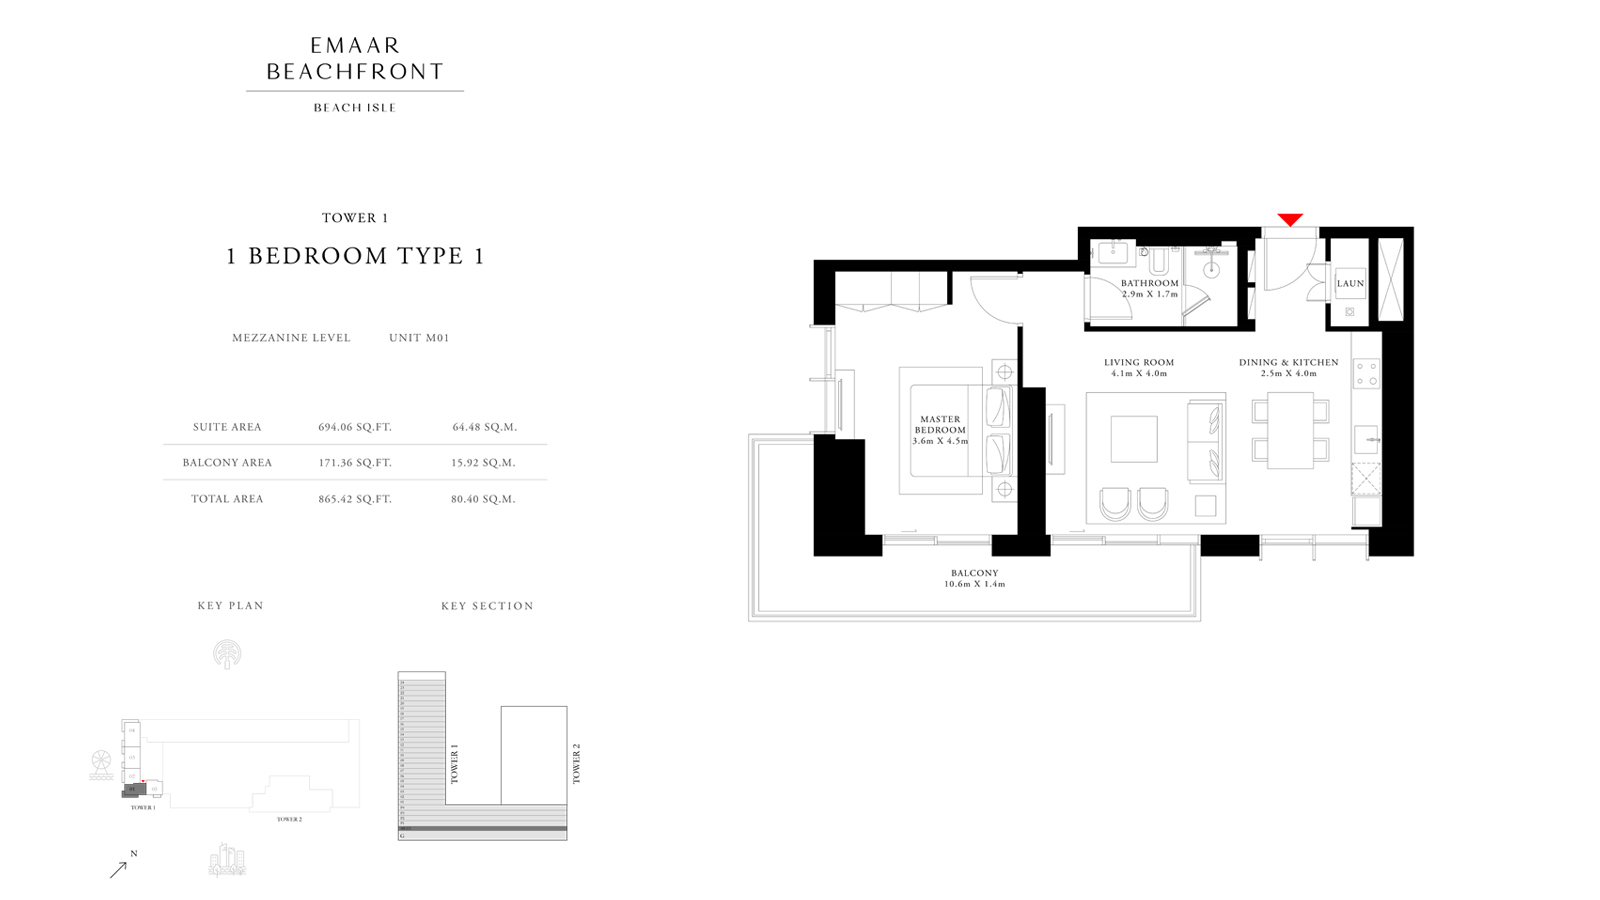 1 Bedroom Type 1 Tower 1, Size 865 sq ft